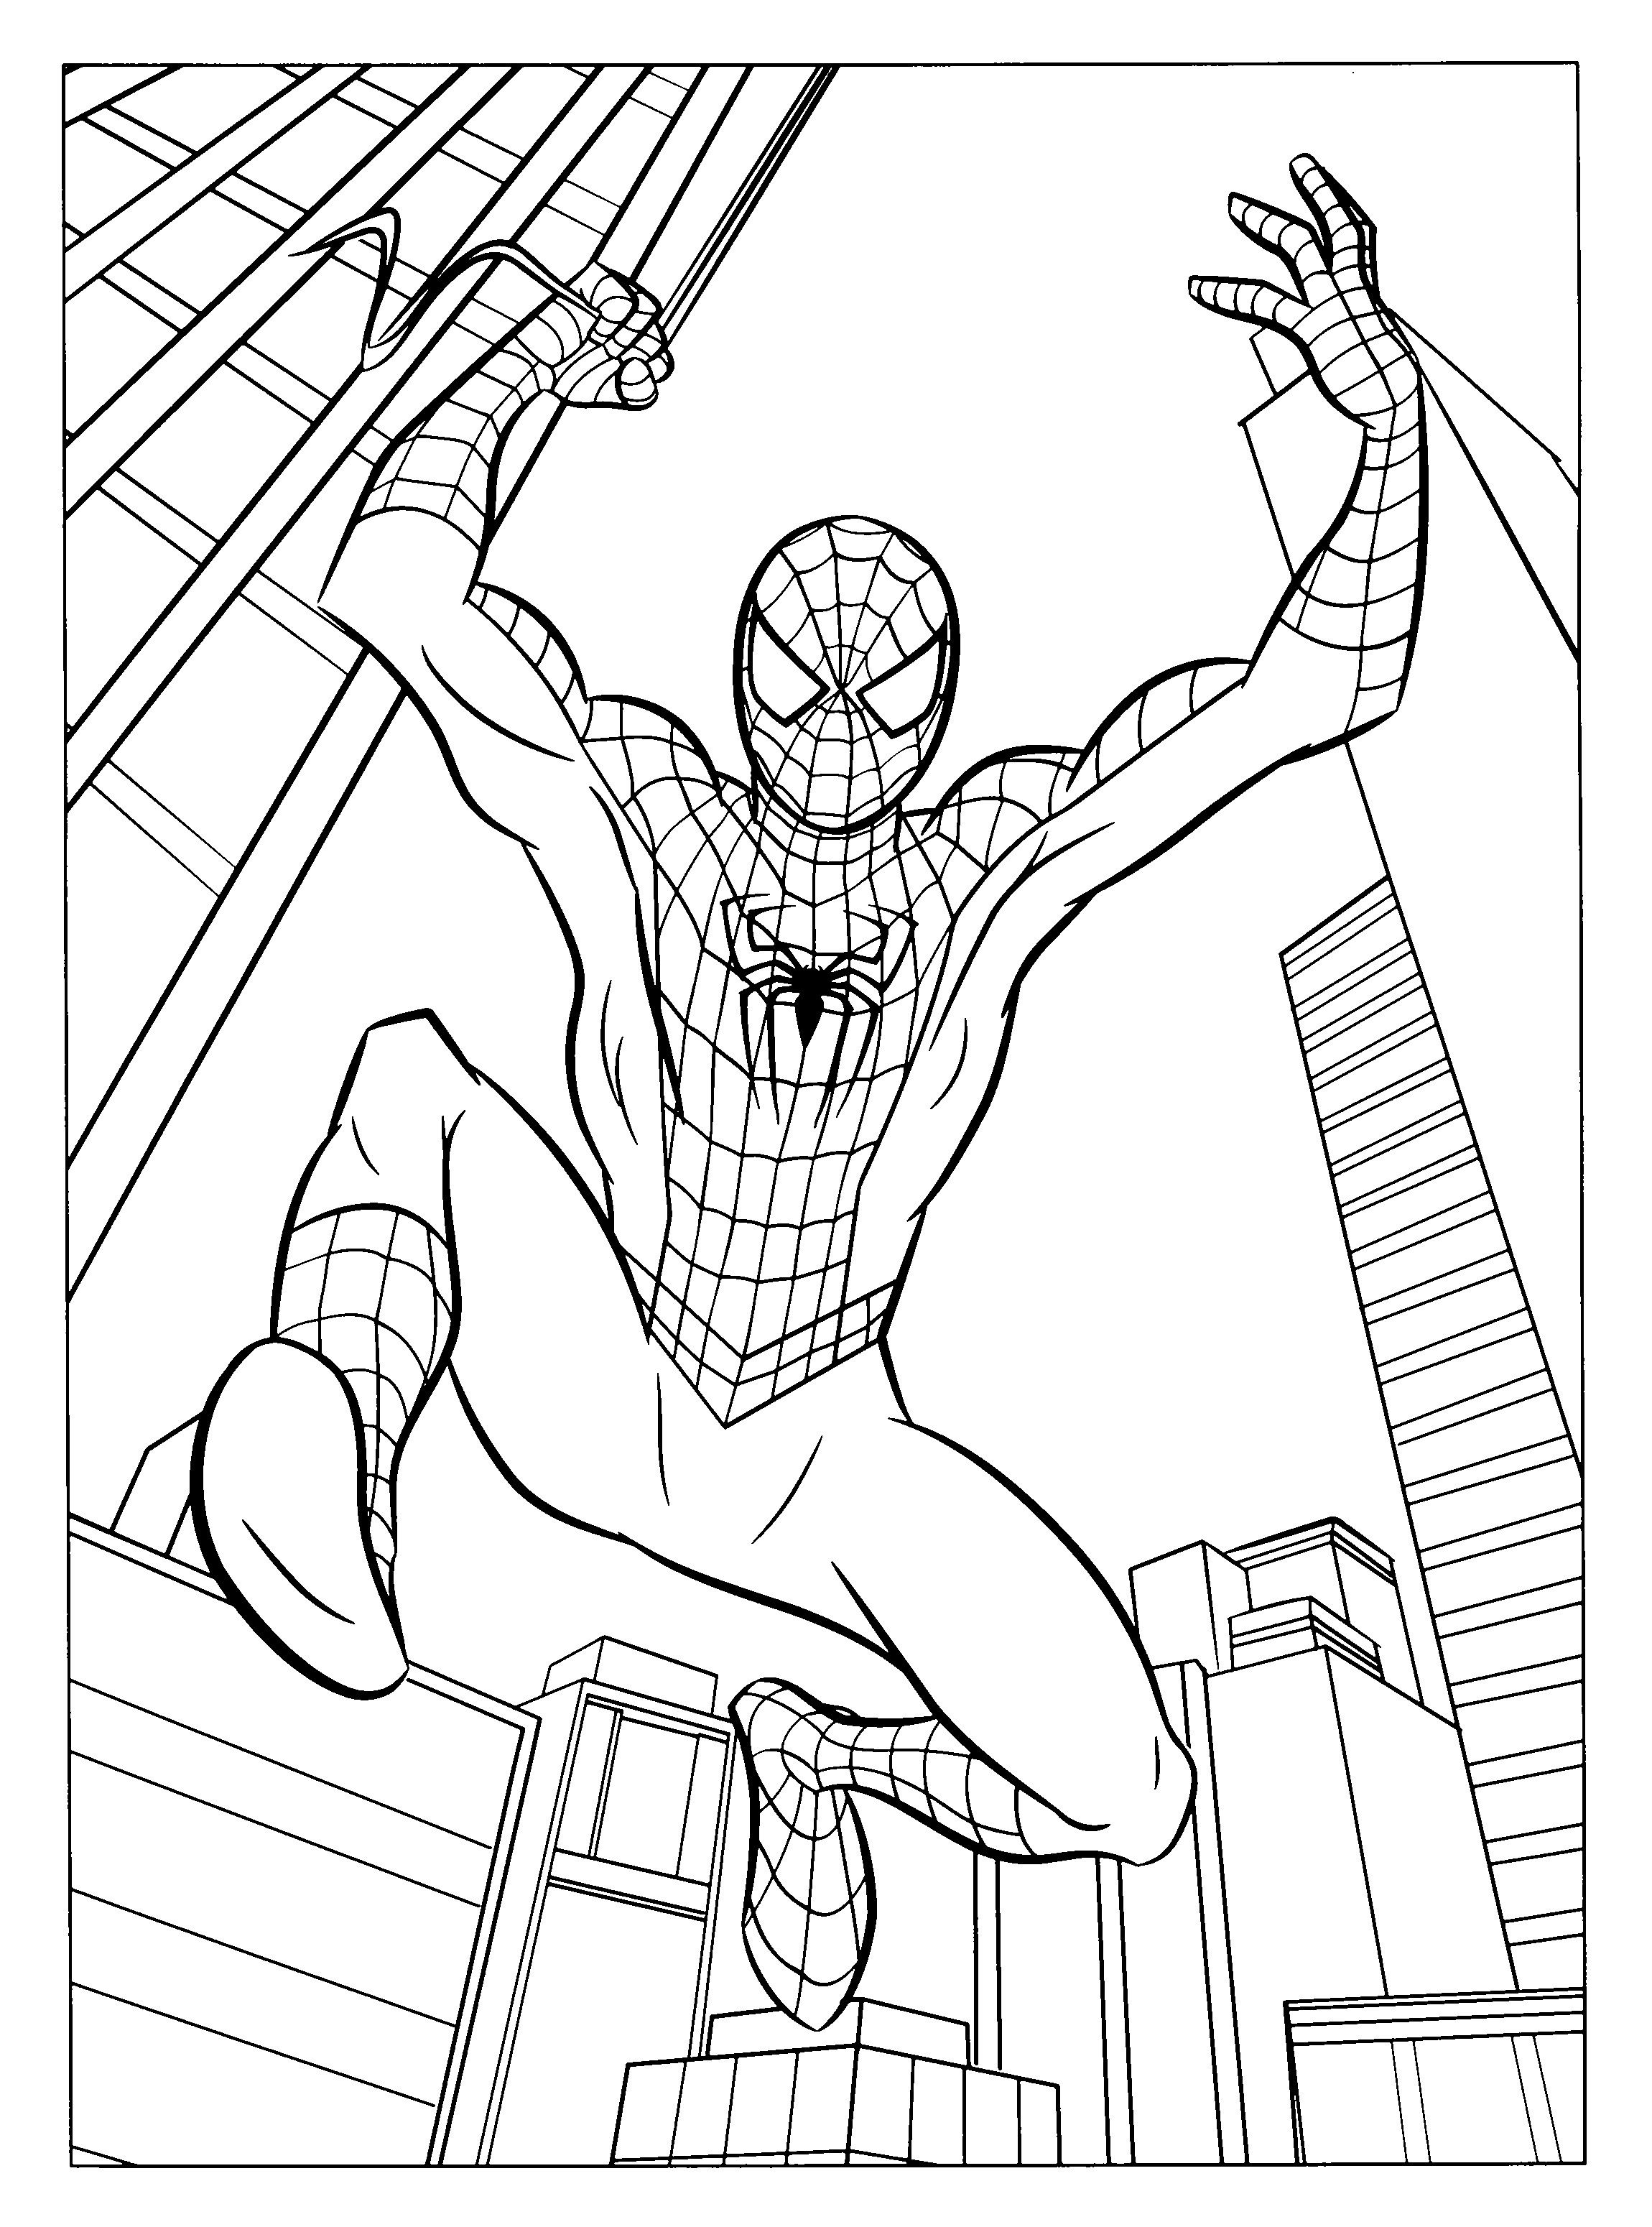 Free Printable Spiderman Coloring Pages For Kids With Images